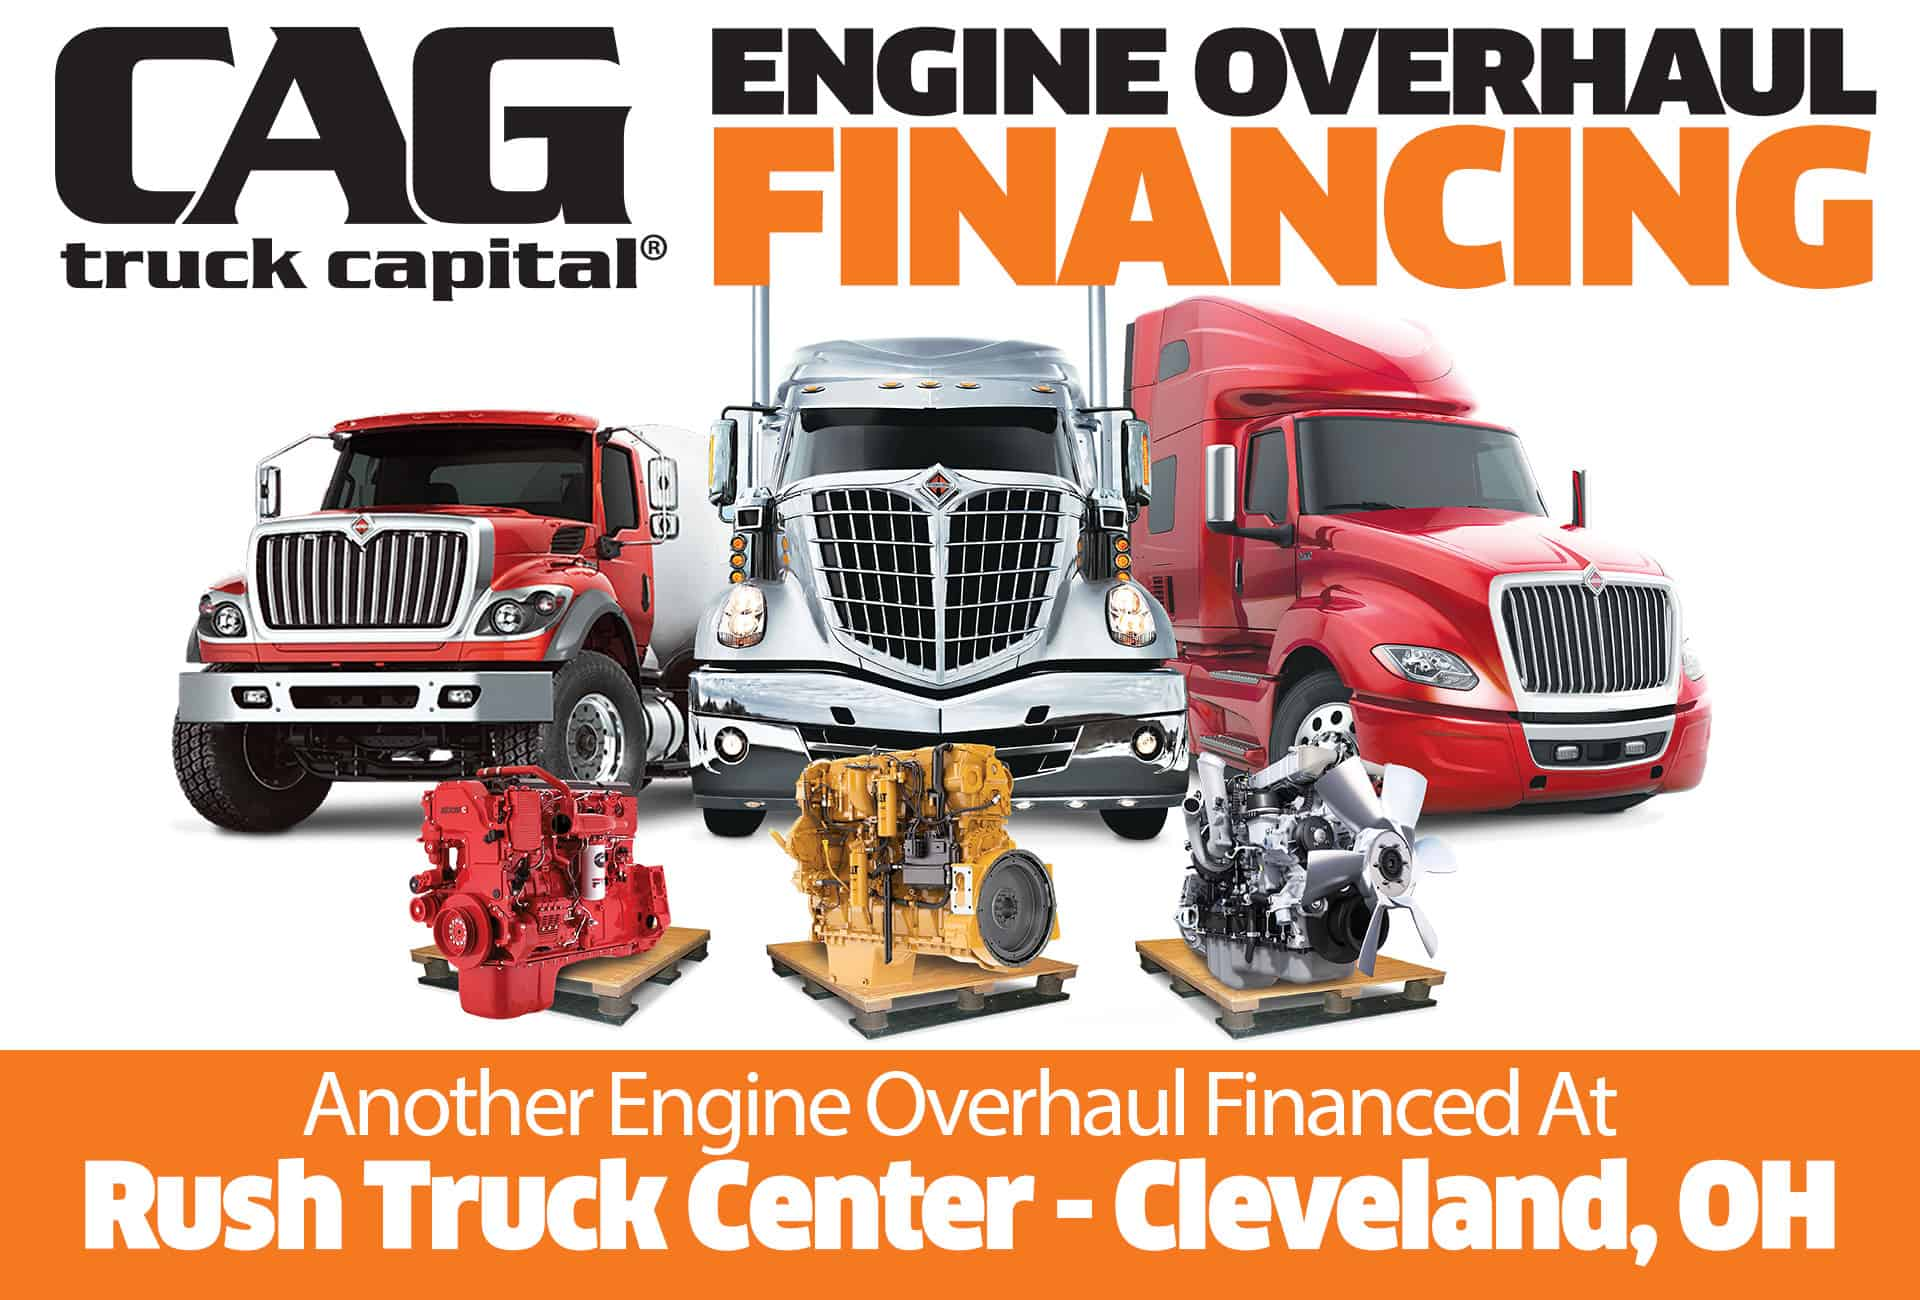 Rush Truck Center Cleveland OH